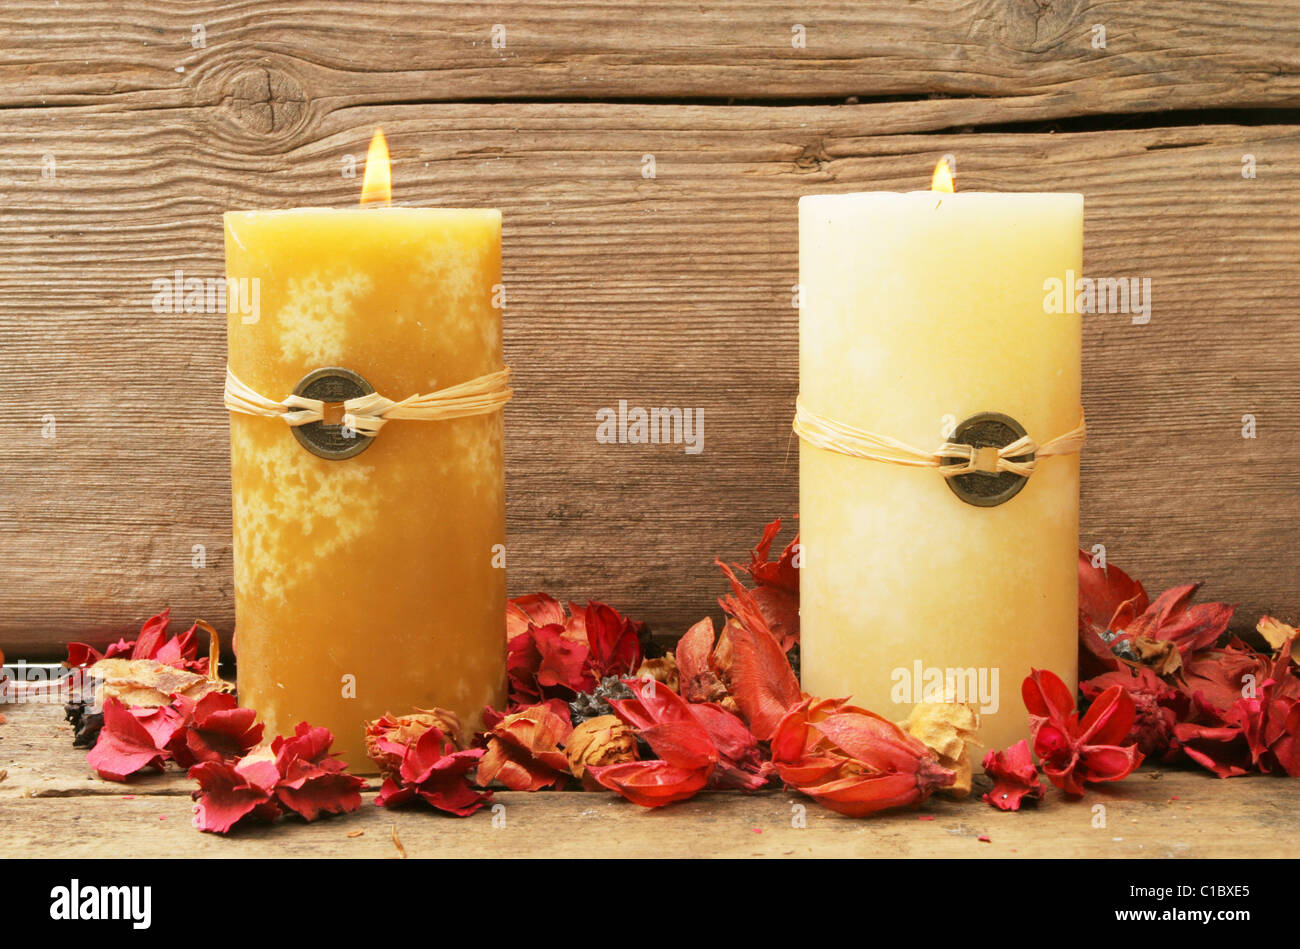 Two burning feng shui candles with dried flowers on a background of old wood - Stock Image